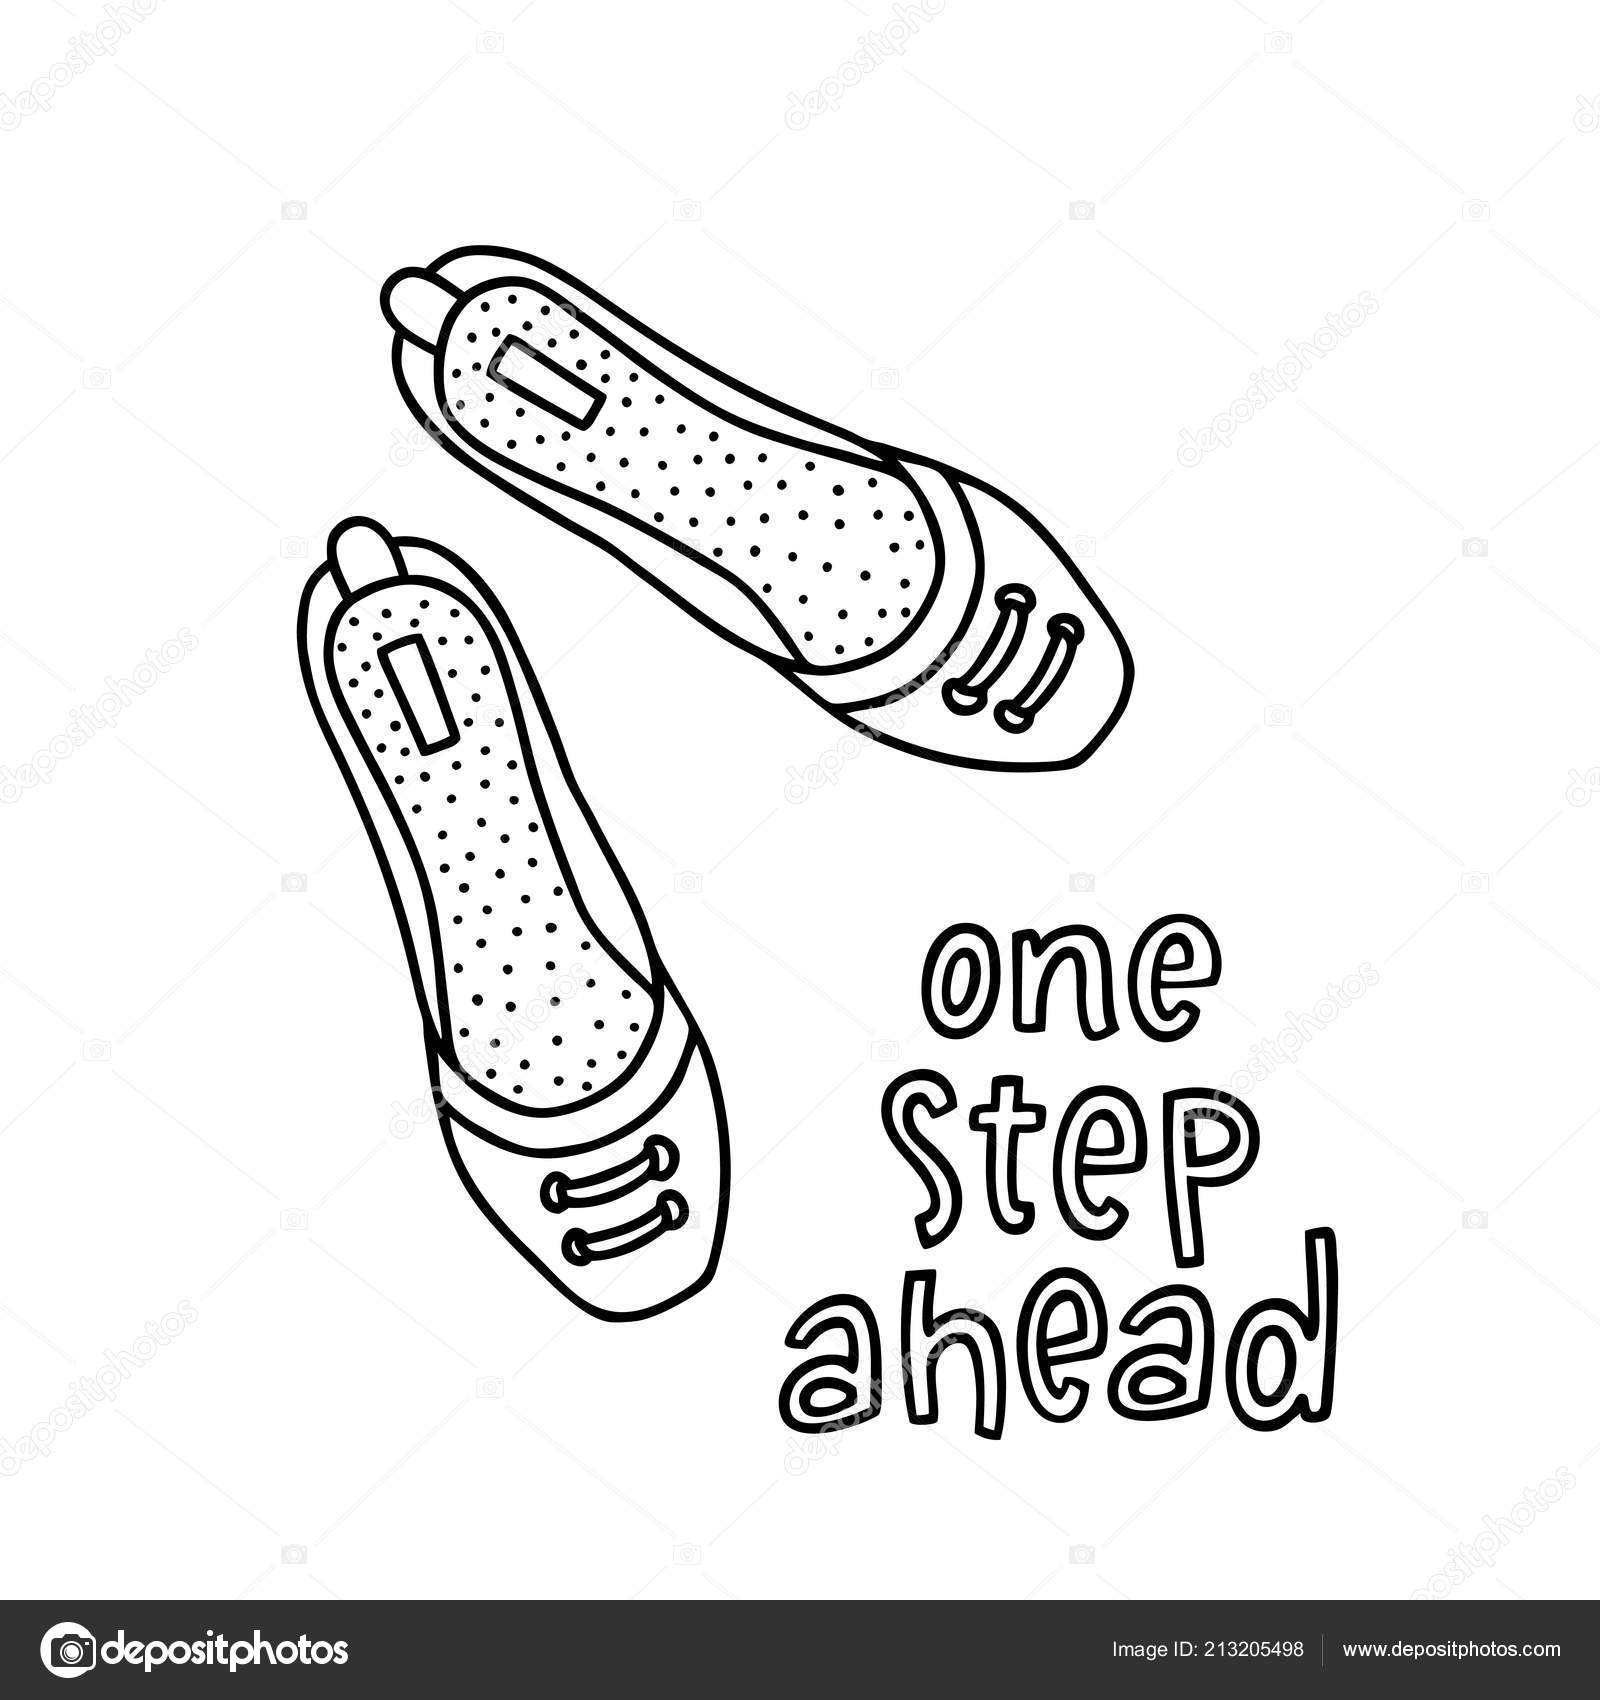 e9c4581133a80 Pair shoes for girl and woman with a handwritten word One Step Ahead. Hand  drawn outline and stroke. Vector illustration can be used to design a  poster, ...